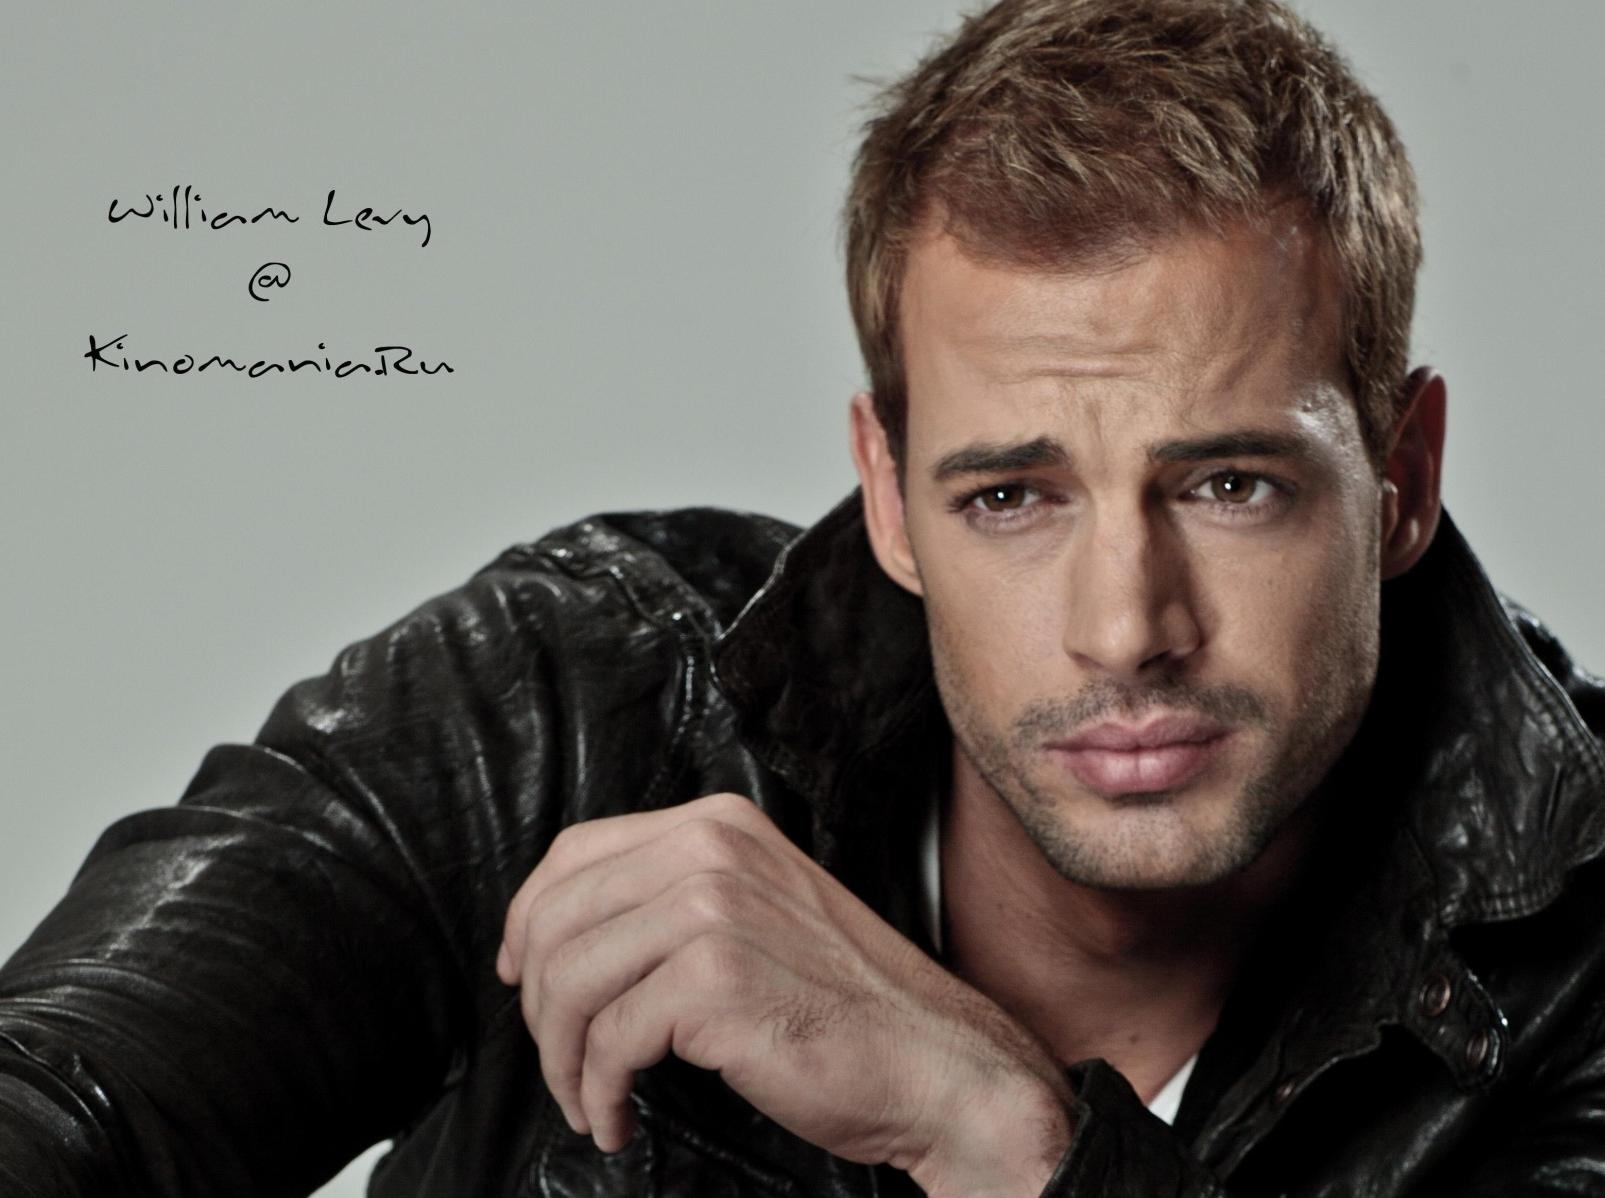 William Levy Wallpapers 1605x1198